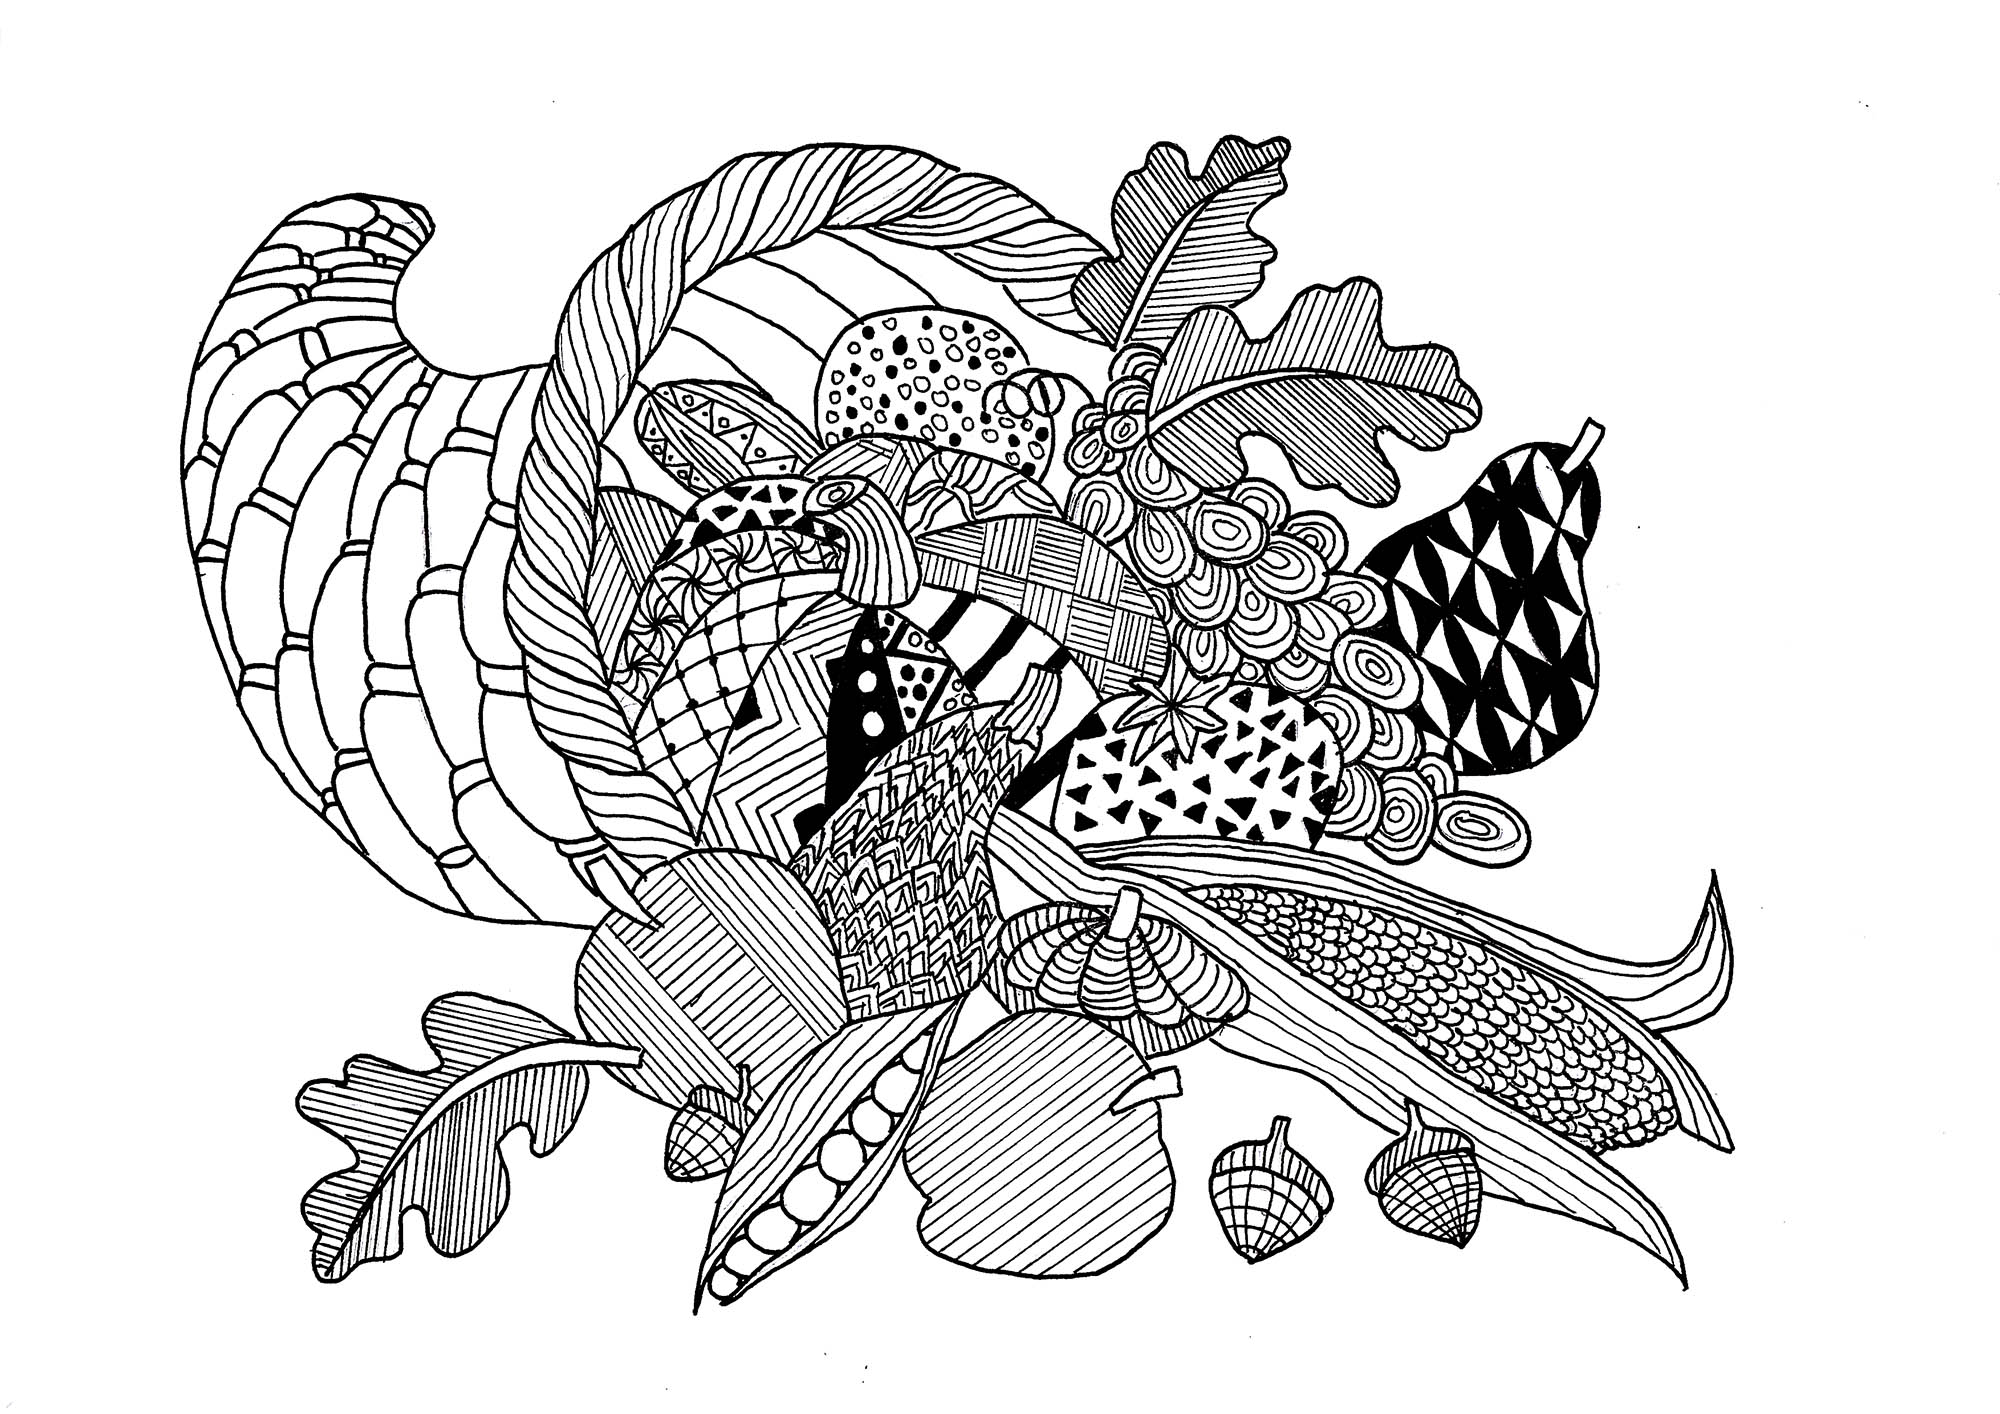 Here is a beautiful coloring page to celebrate Thanksgiving